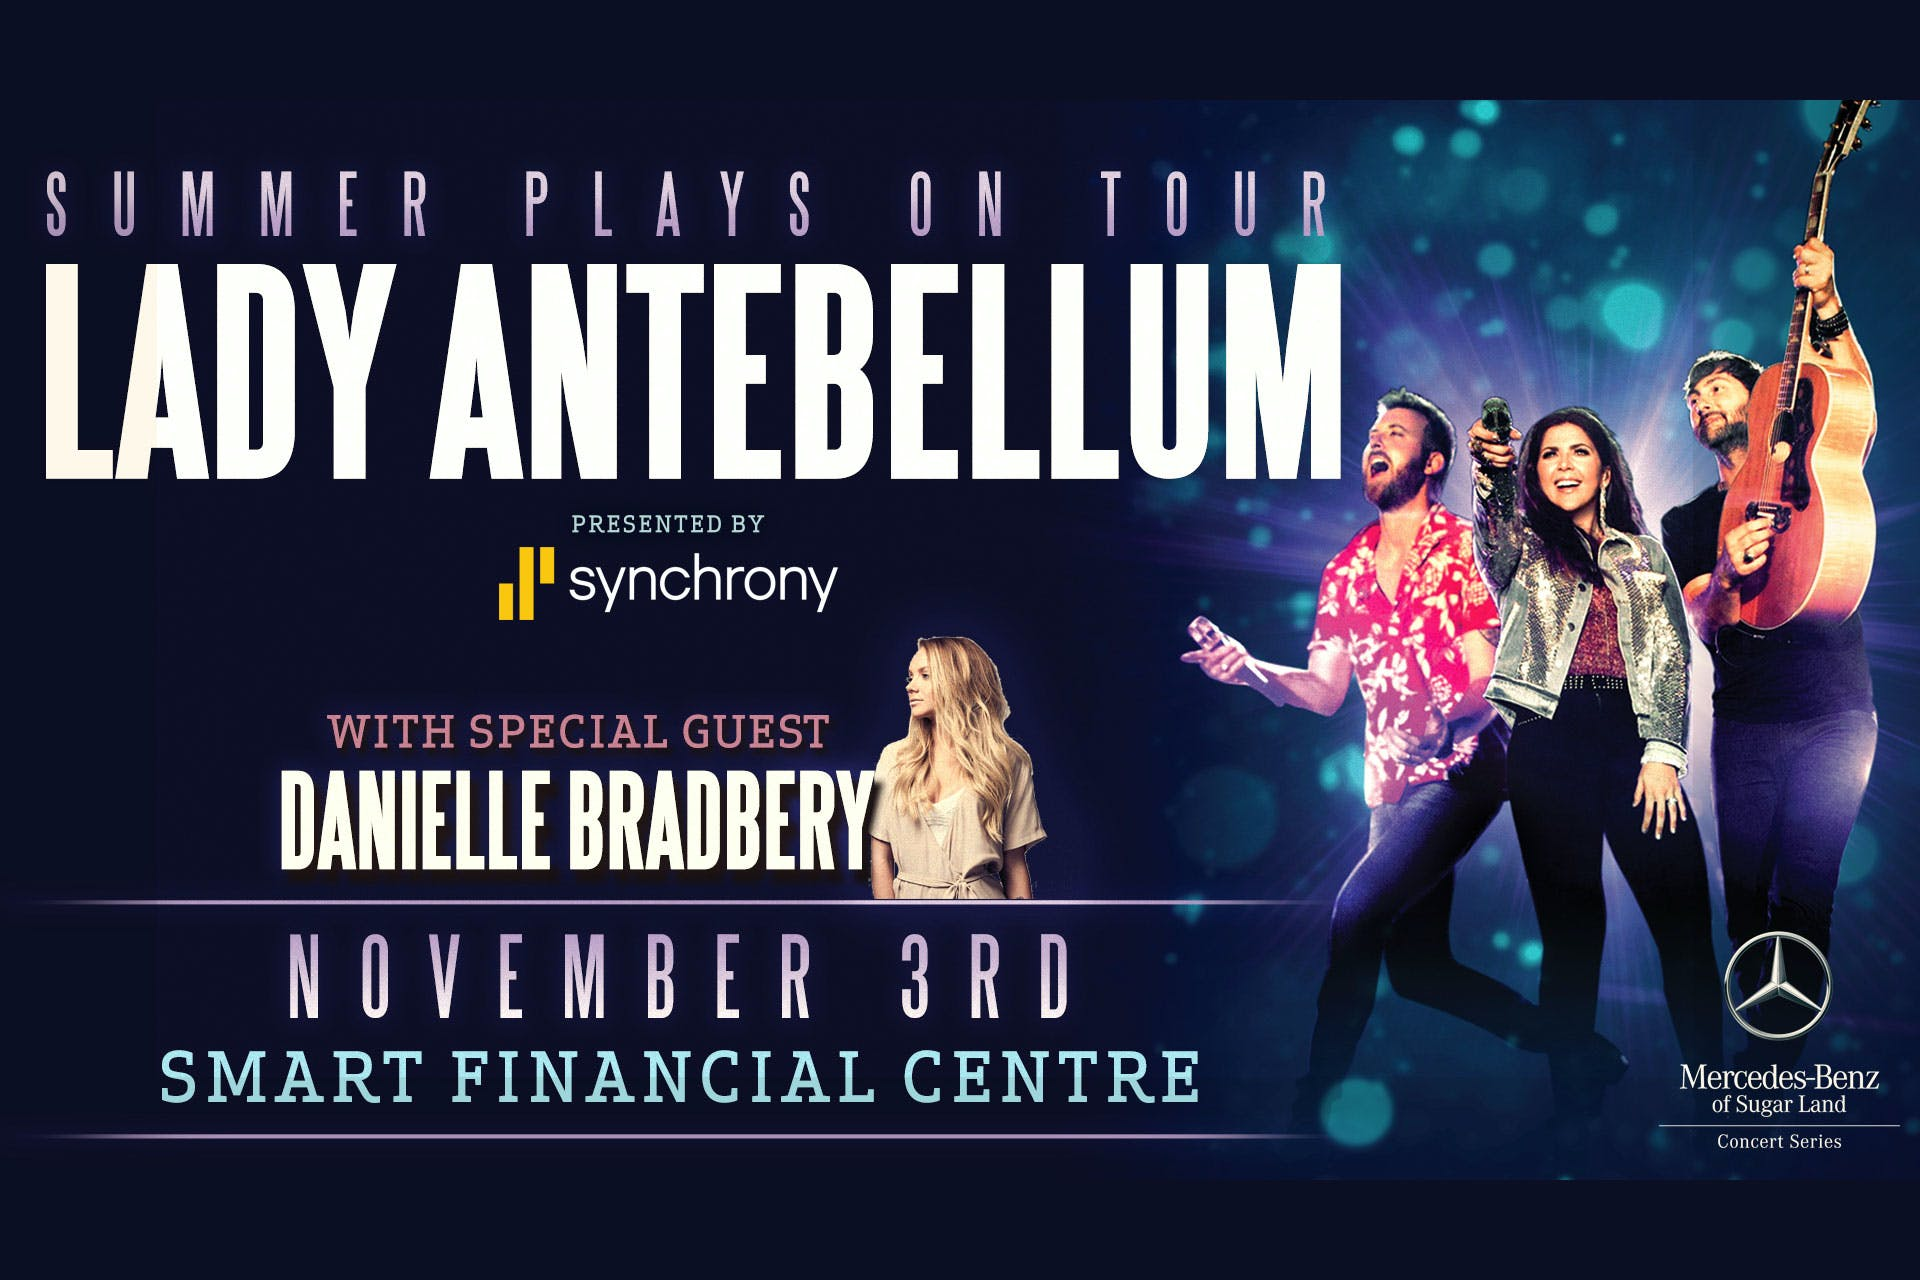 lady-antebellum-tickets-giveaway-2018